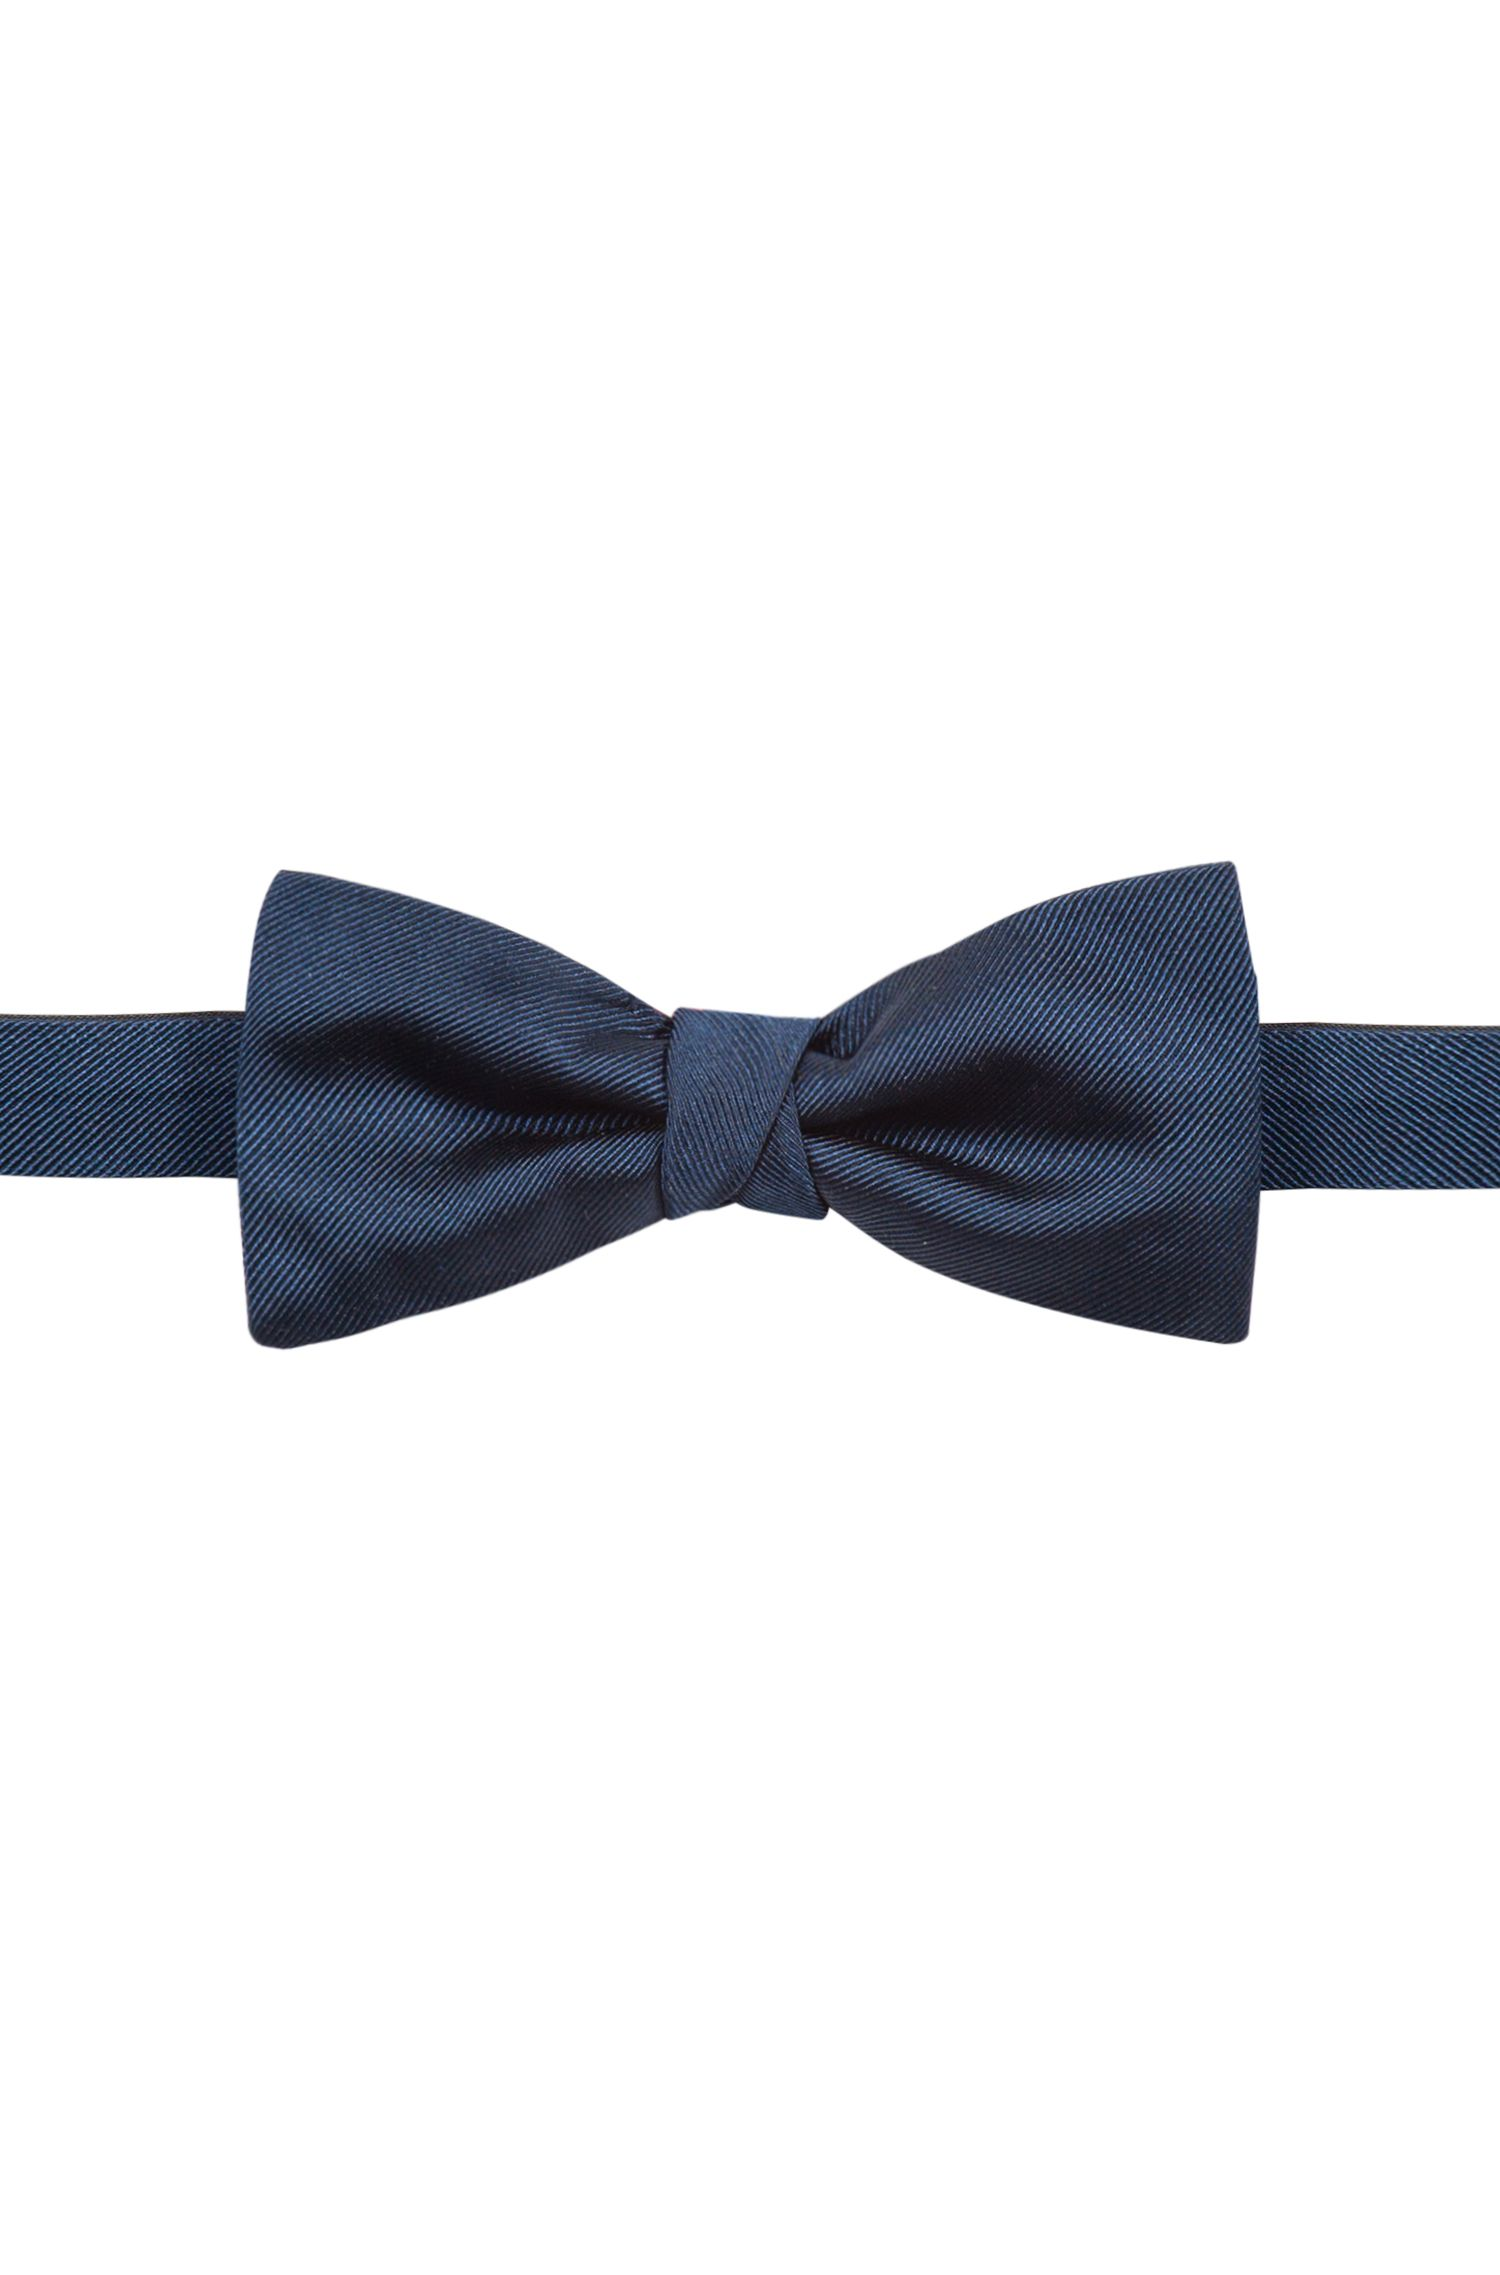 Silk bow tie with twill structure